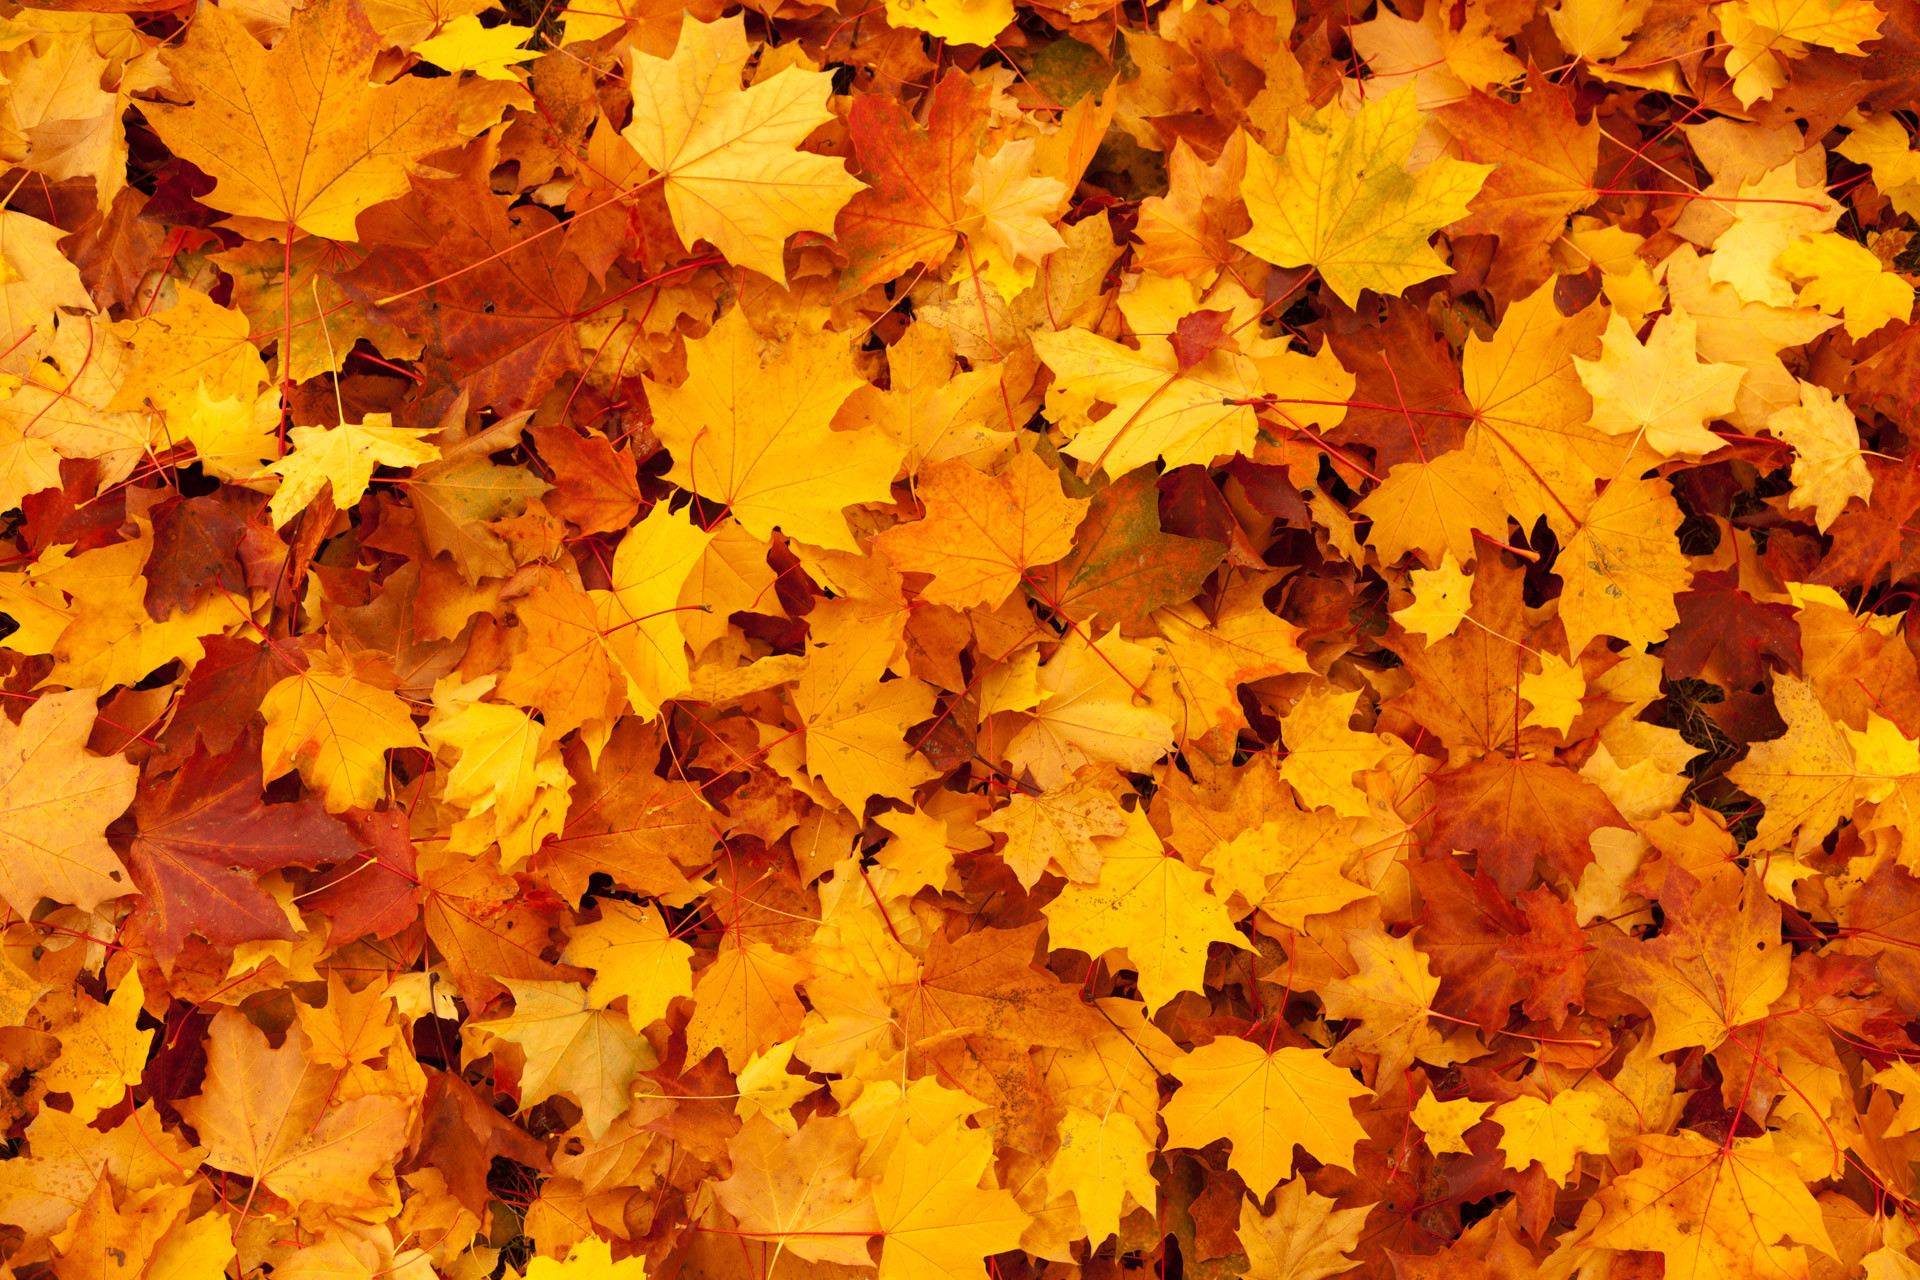 Maple Leaves Background Free Stock Photo HD – Public Domain Pictures